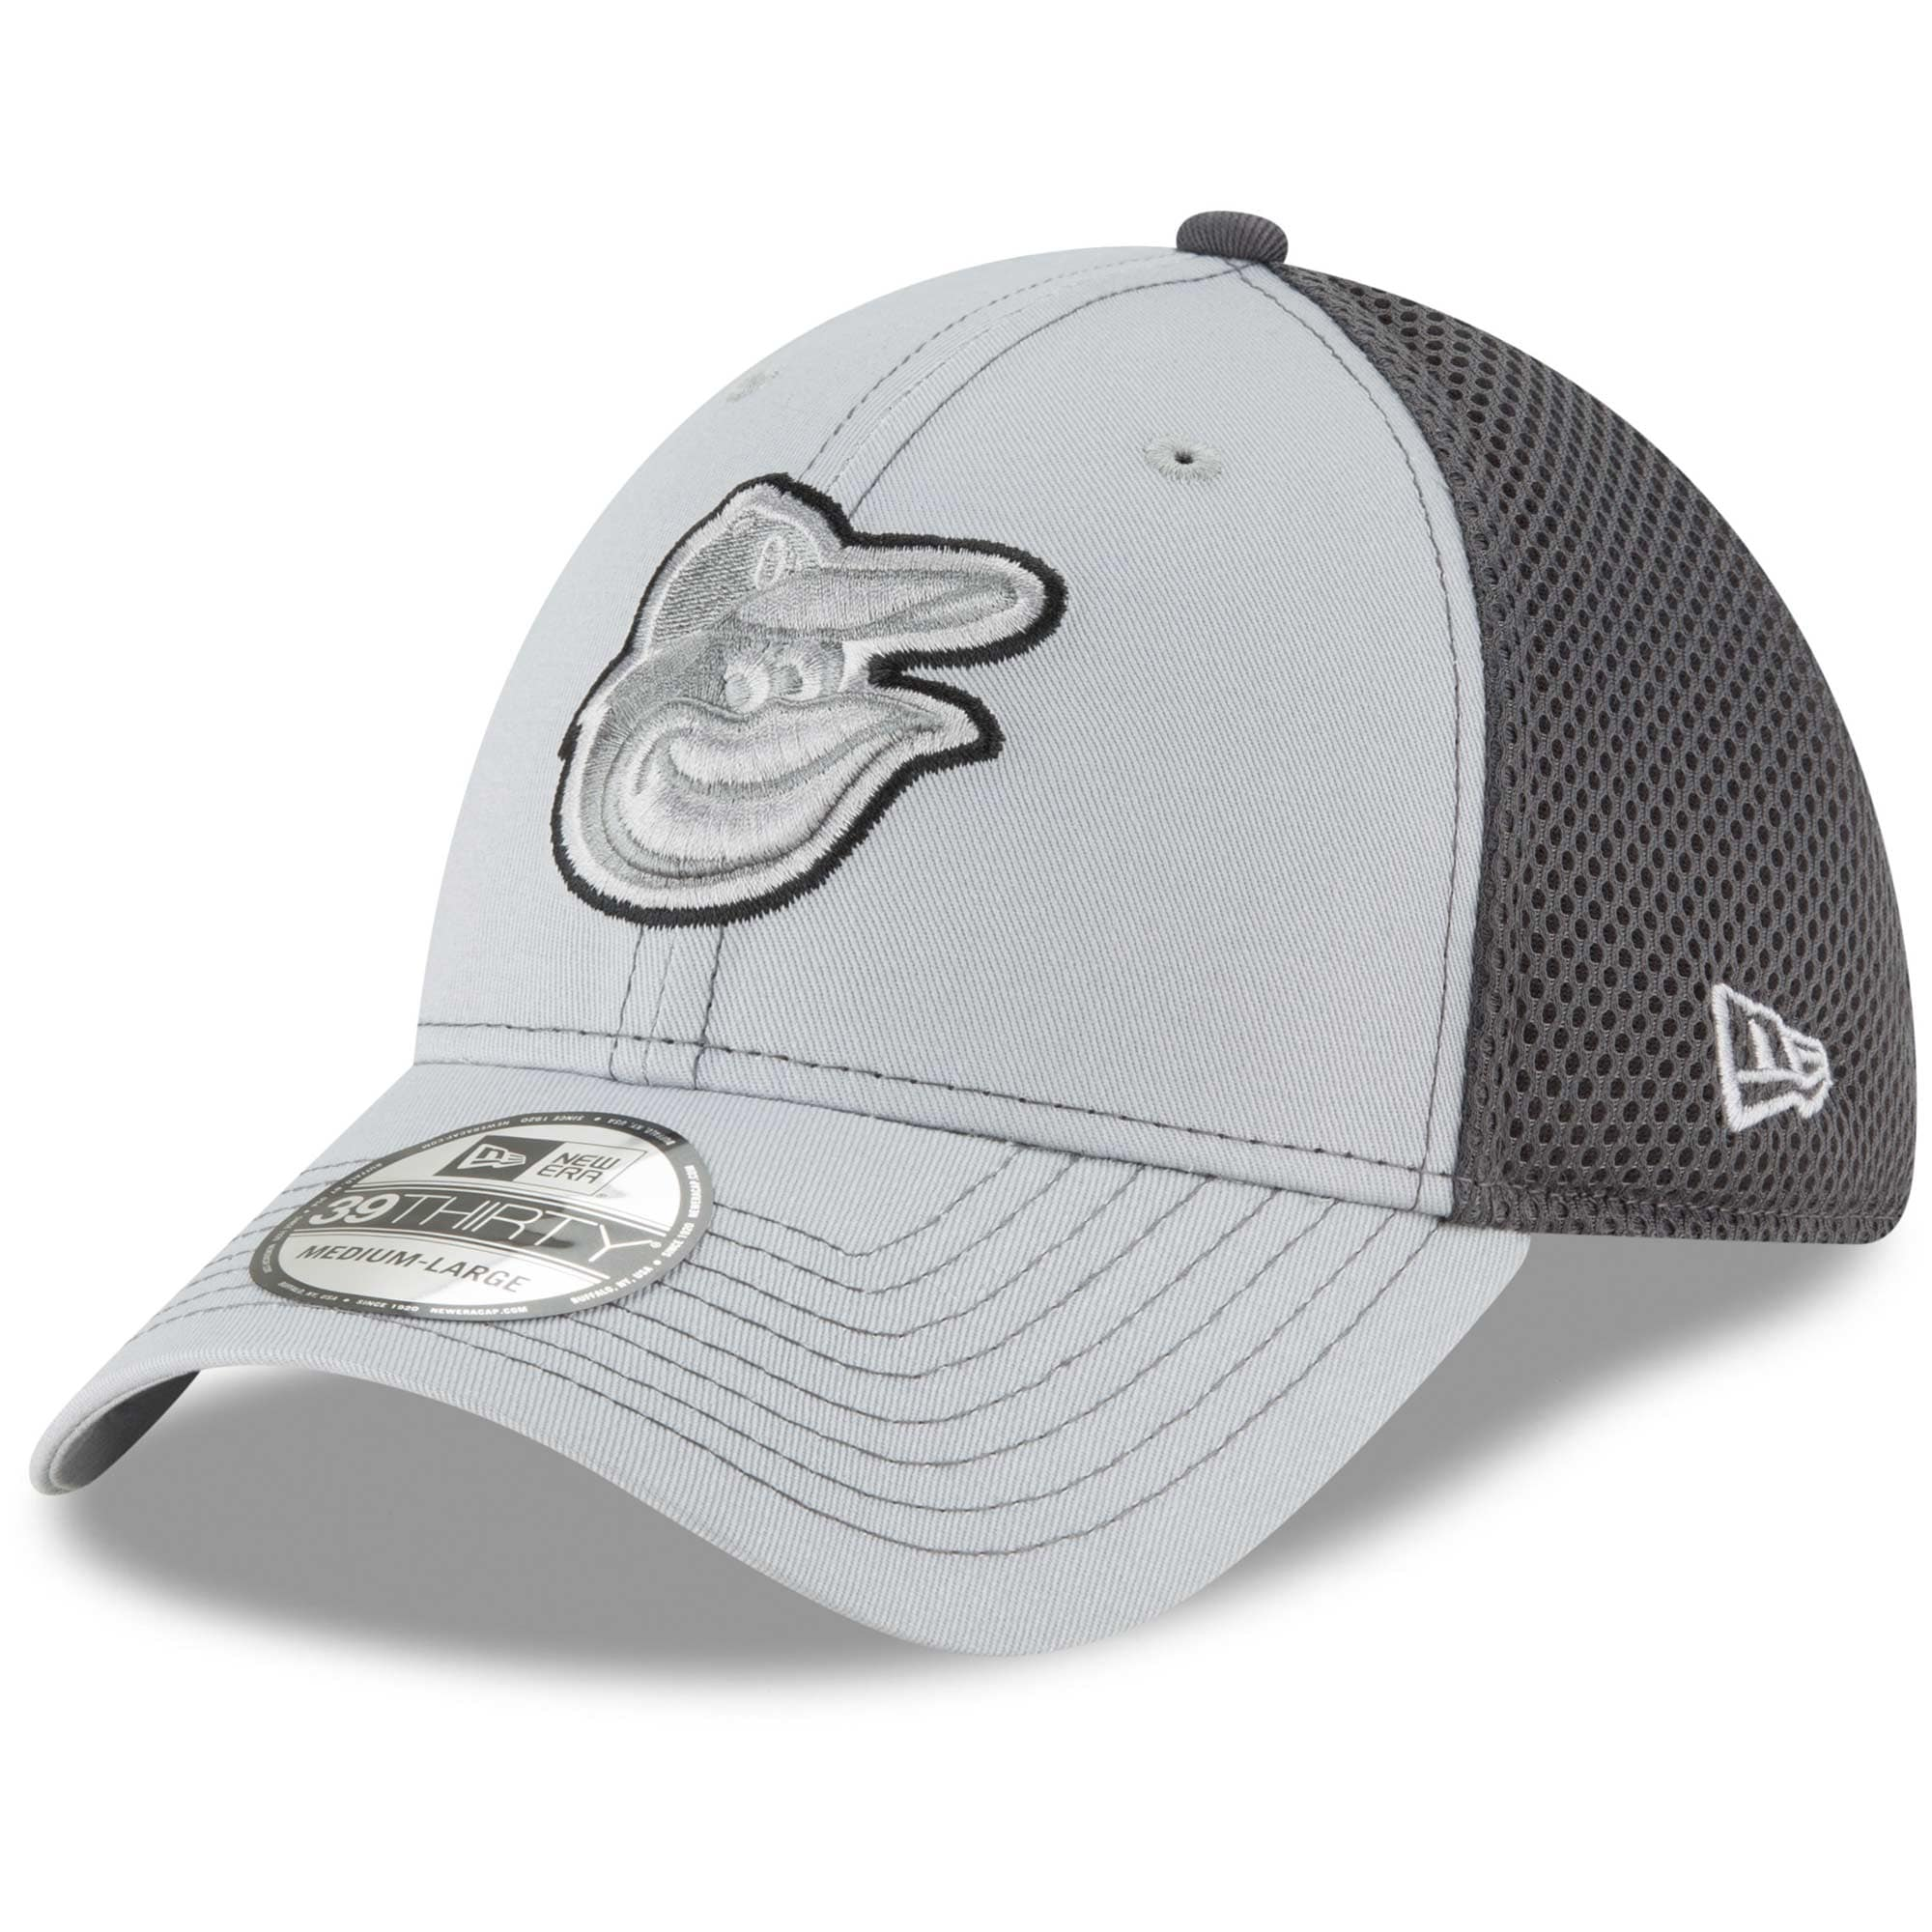 Baltimore Orioles New Era Grayed Out Neo 39THIRTY Flex Hat - Gray